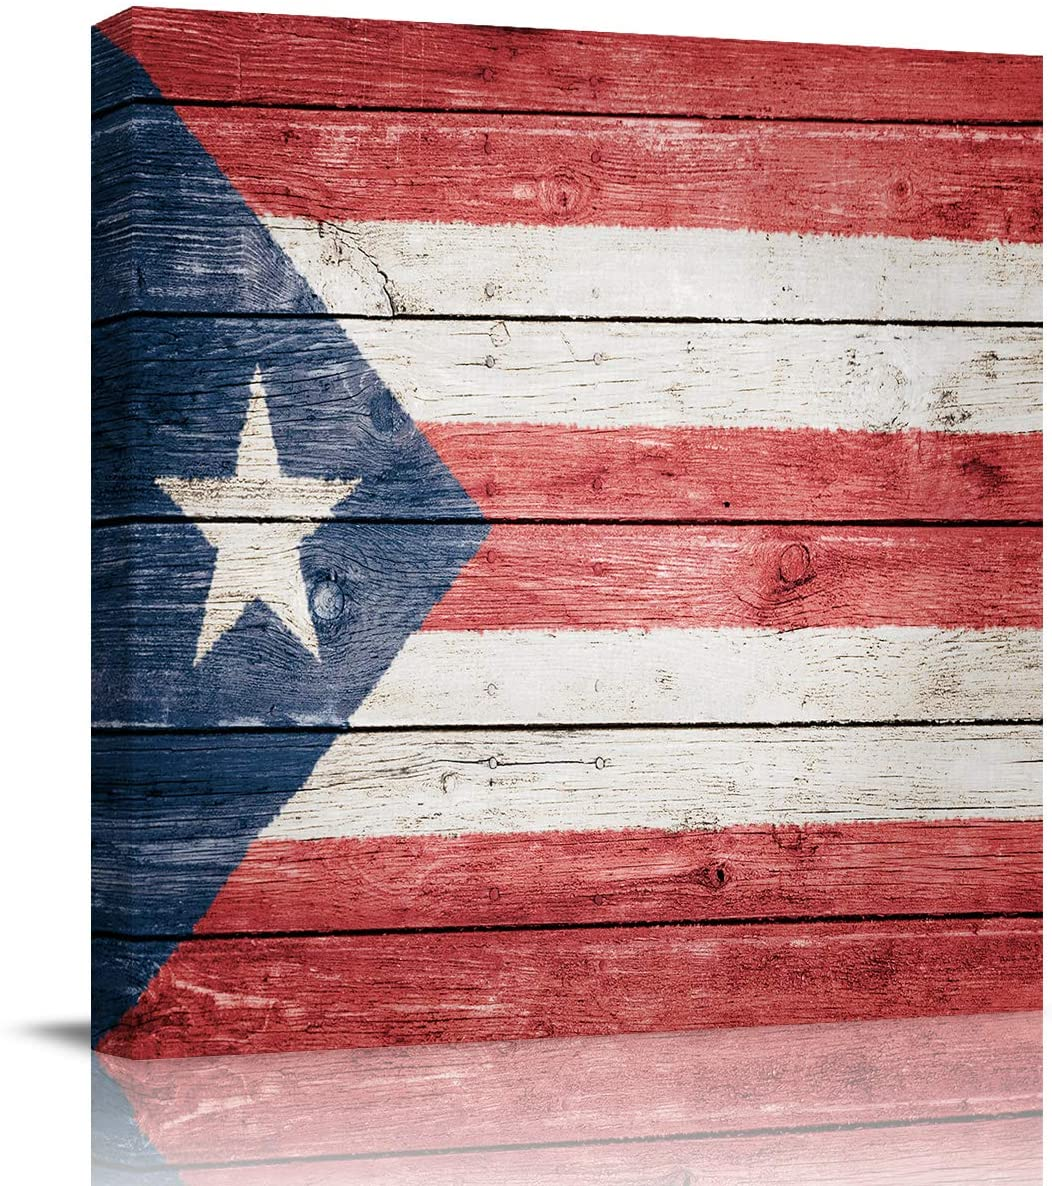 EZON-CH 12x12in Wall Art on Canvas Oil Painting Framed Artwork for Office Home Wall Decor,The Flag of Puerto Rico America Art Prints,Ready to Hang